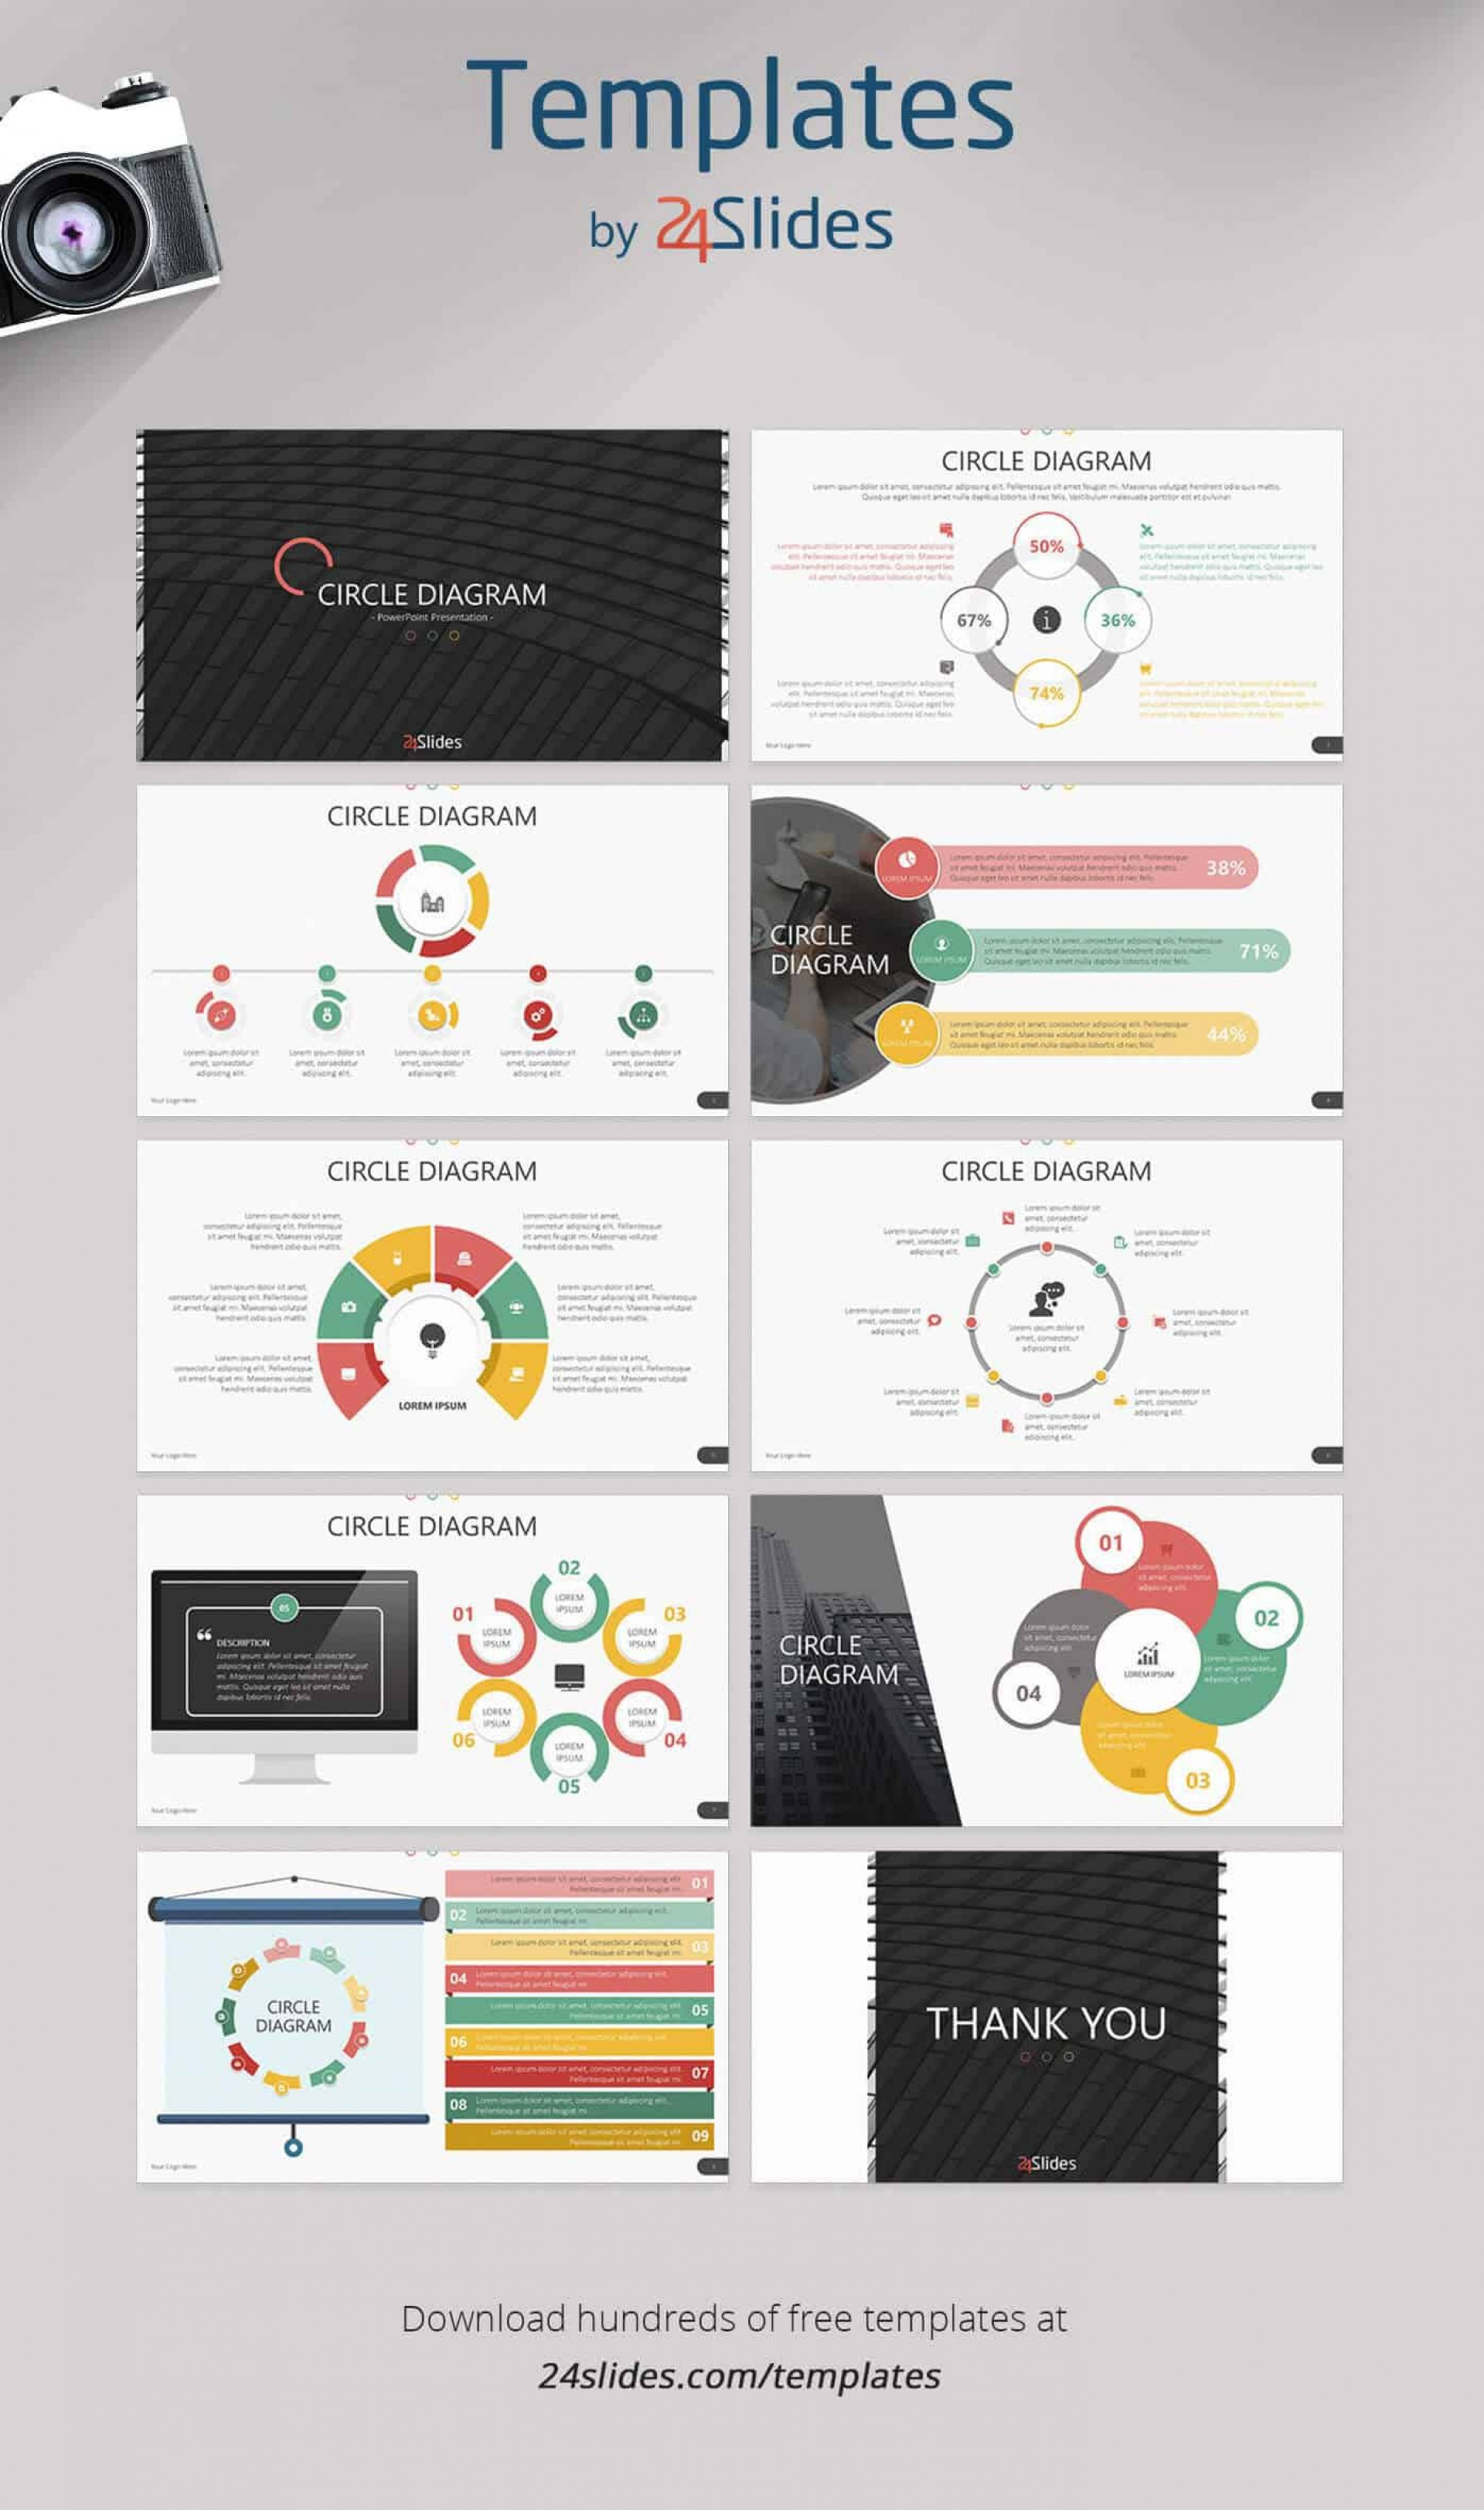 000 Amazing Power Point Presentation Template Free Example  Powerpoint Layout Download 2019 Modern Busines1920